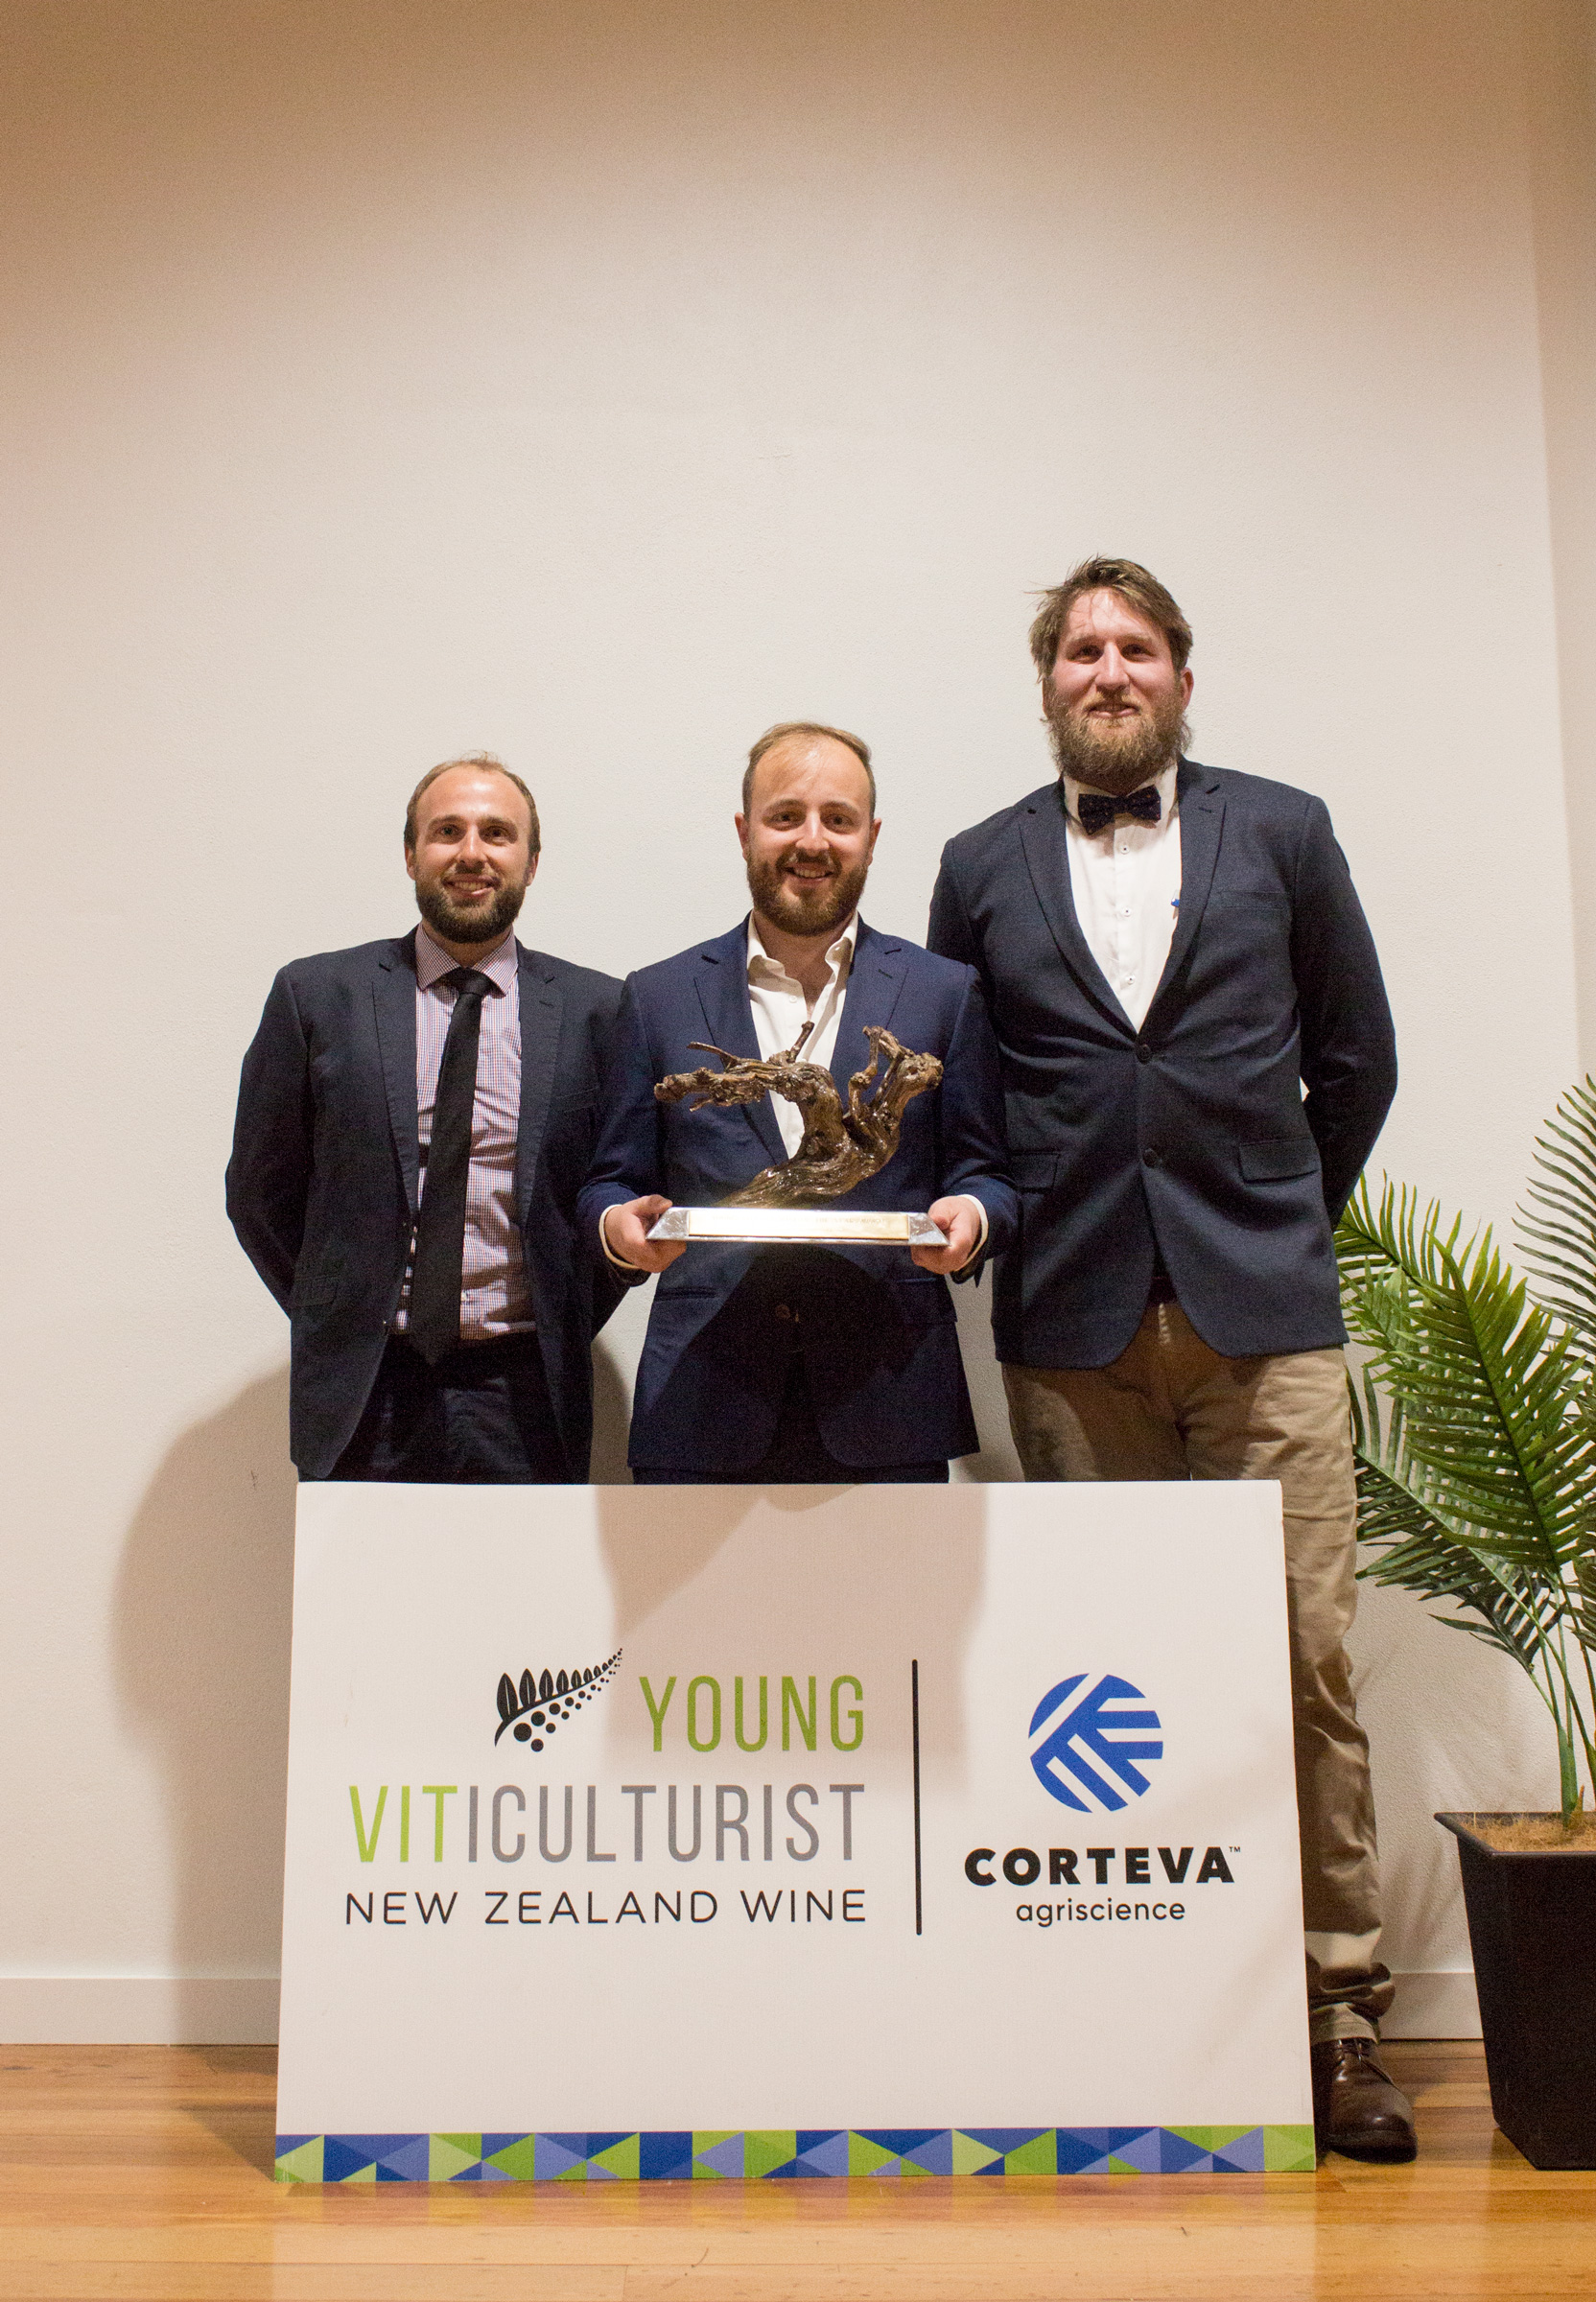 The Young Vit 2020 Winners - Rhys Hall (1st place), Sam Bain (2nd) , and George Bunnett (3rd)